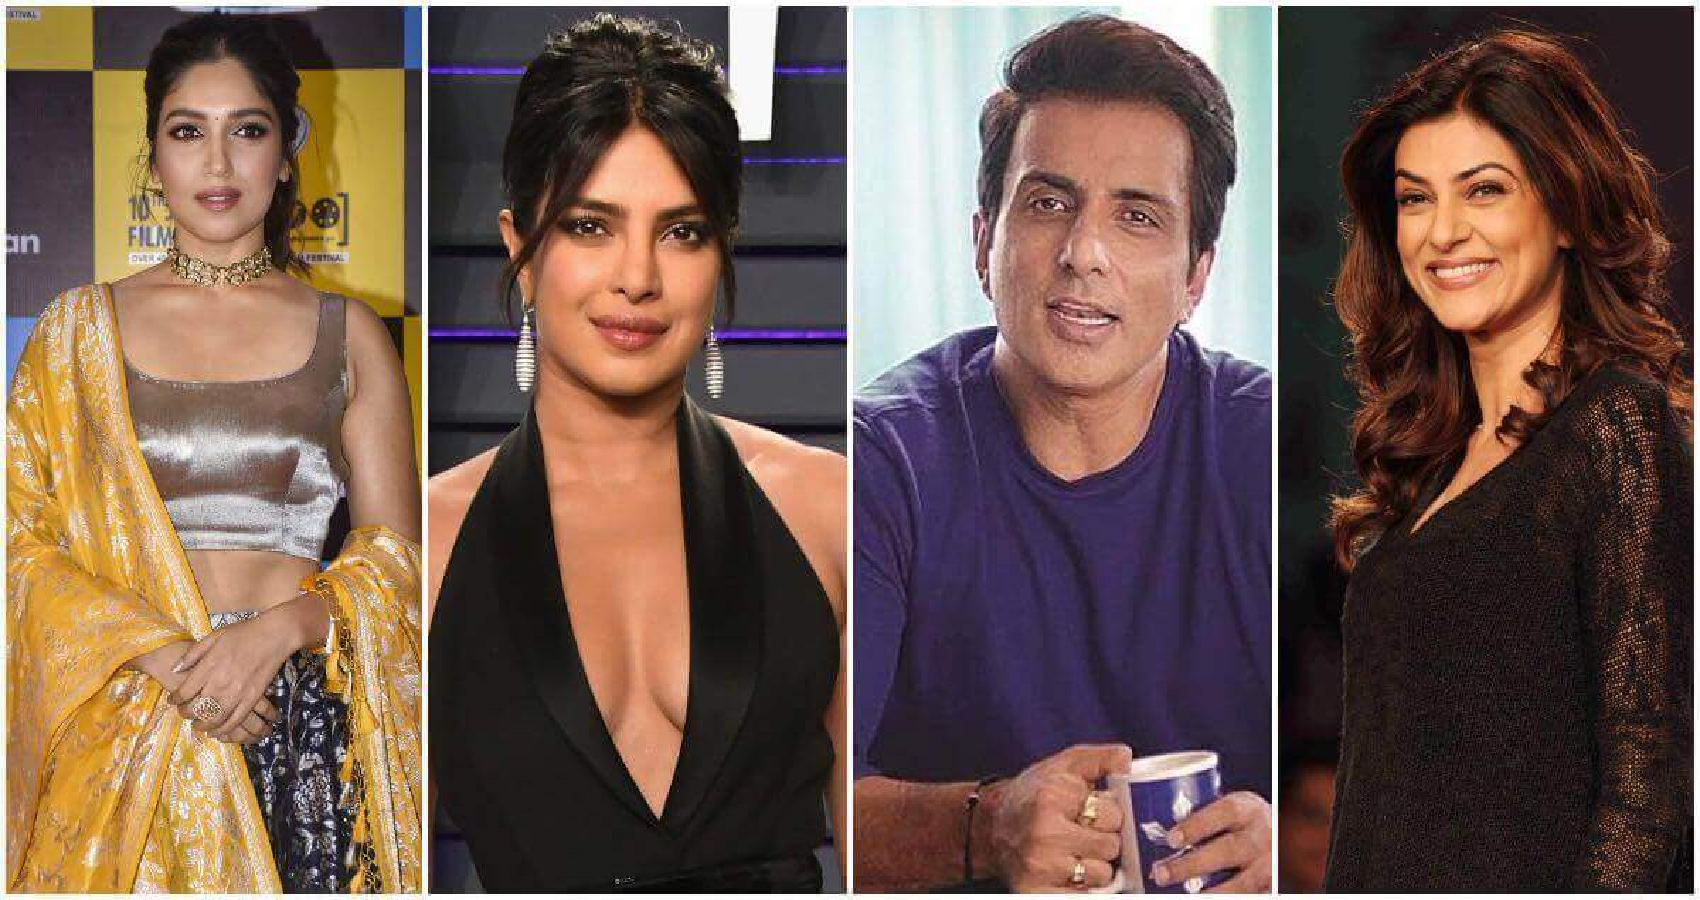 Several Bollywood Celebrities Lead Relief Activities For COVID-19 Crisis In India